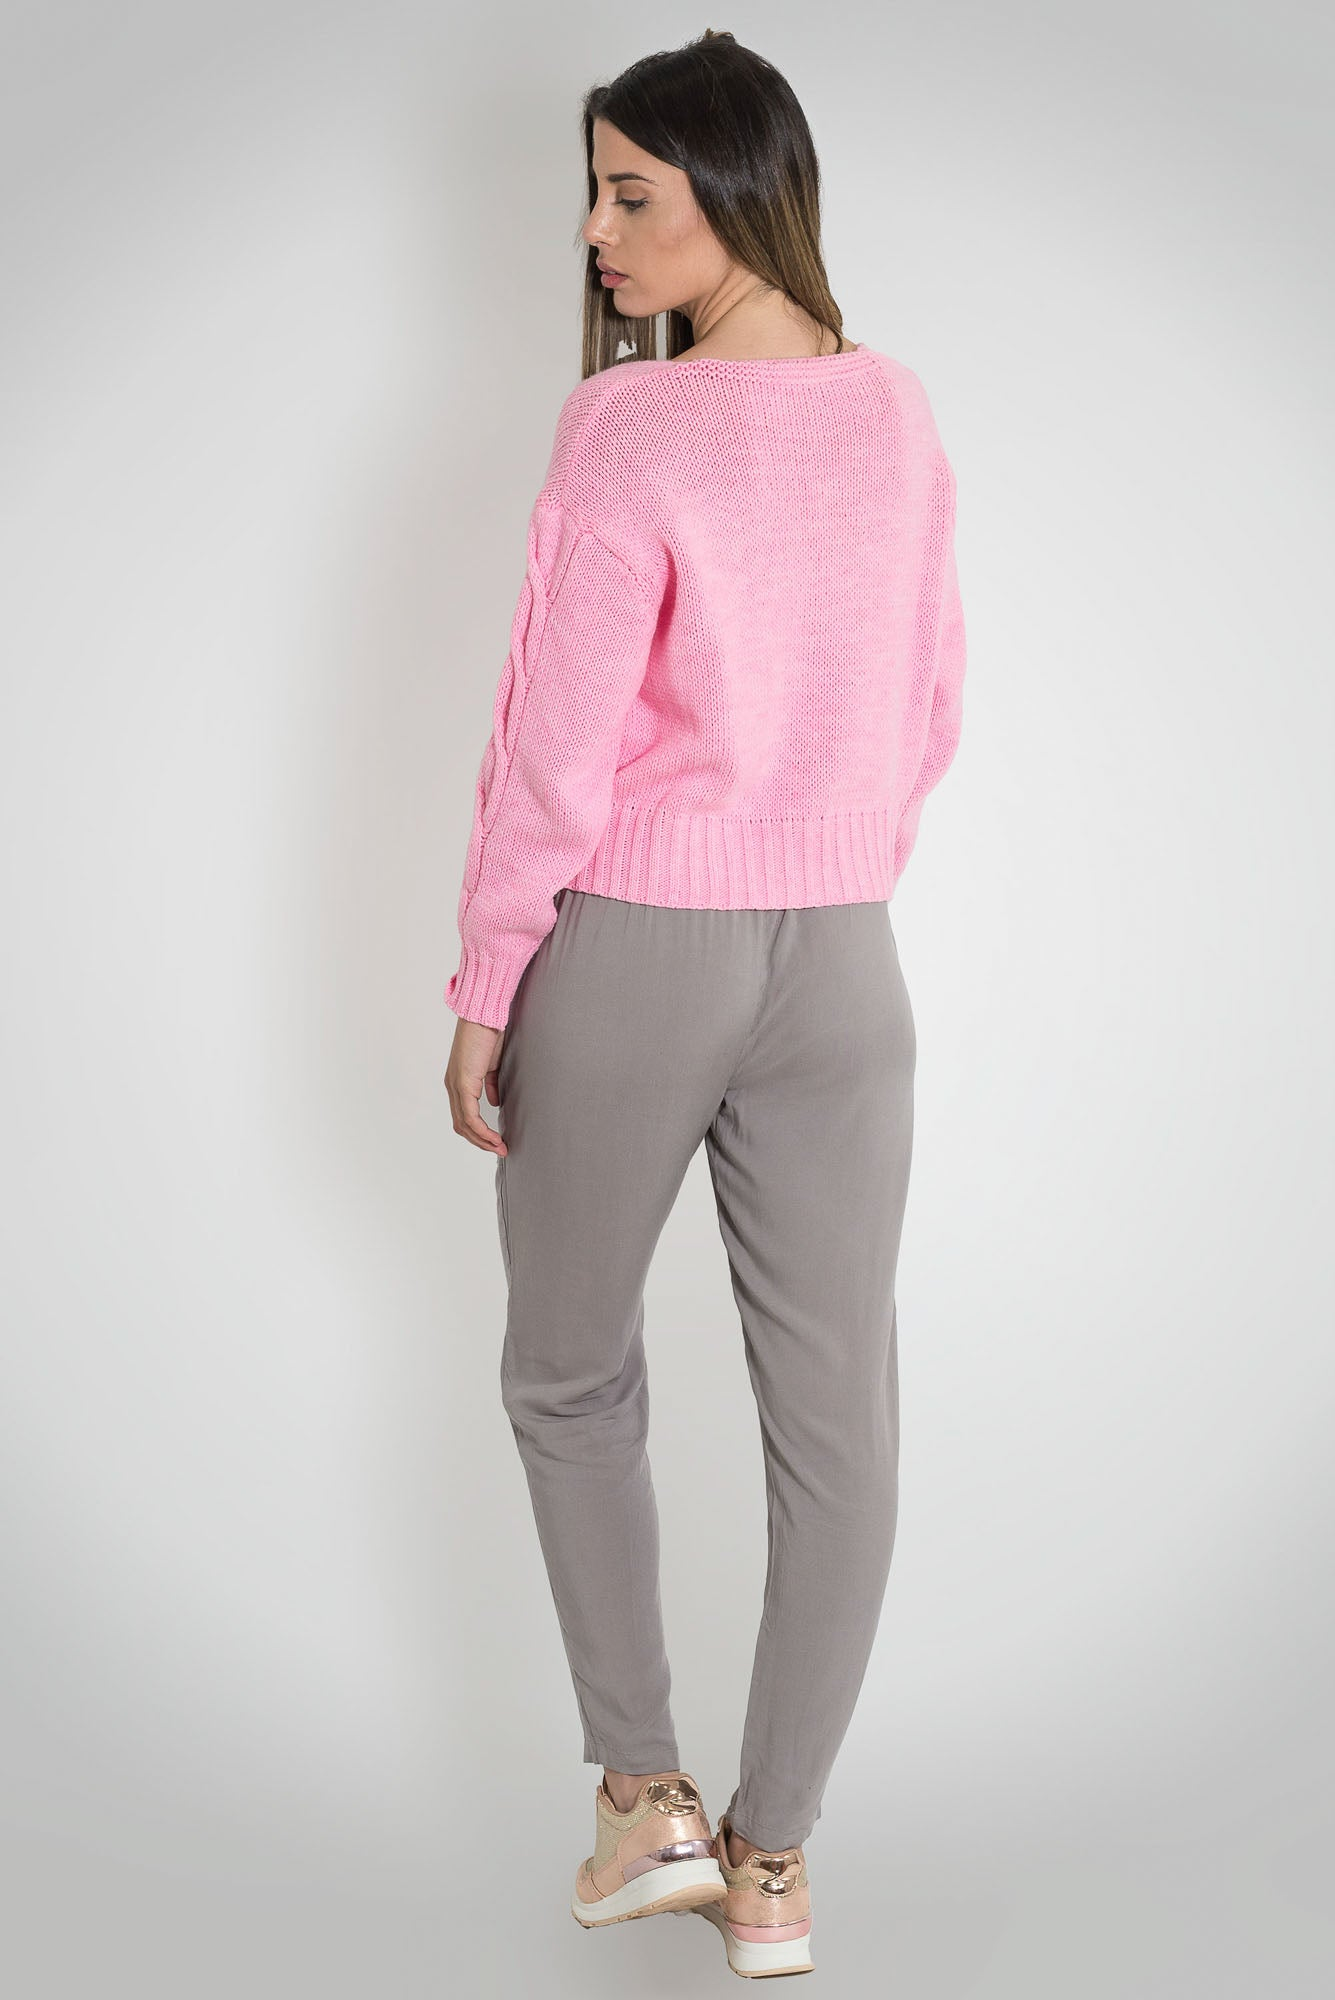 Knitted Pink Sweater